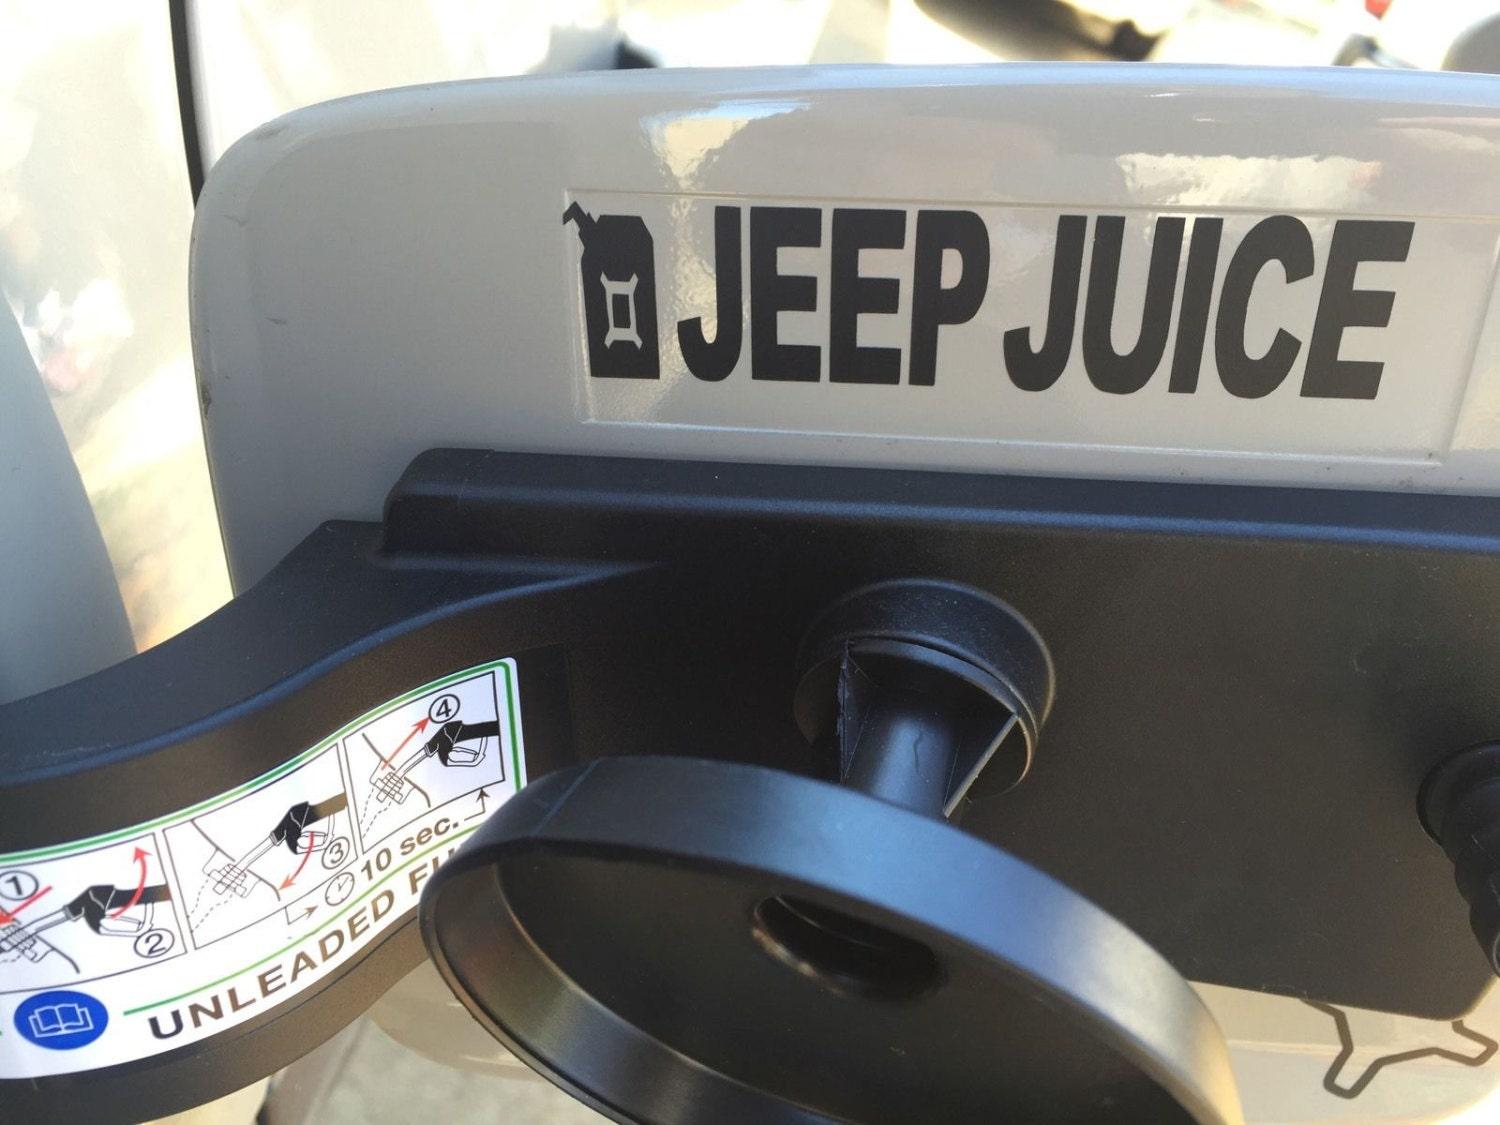 jeep renegade jeep juice x gas can decal sticker. Black Bedroom Furniture Sets. Home Design Ideas